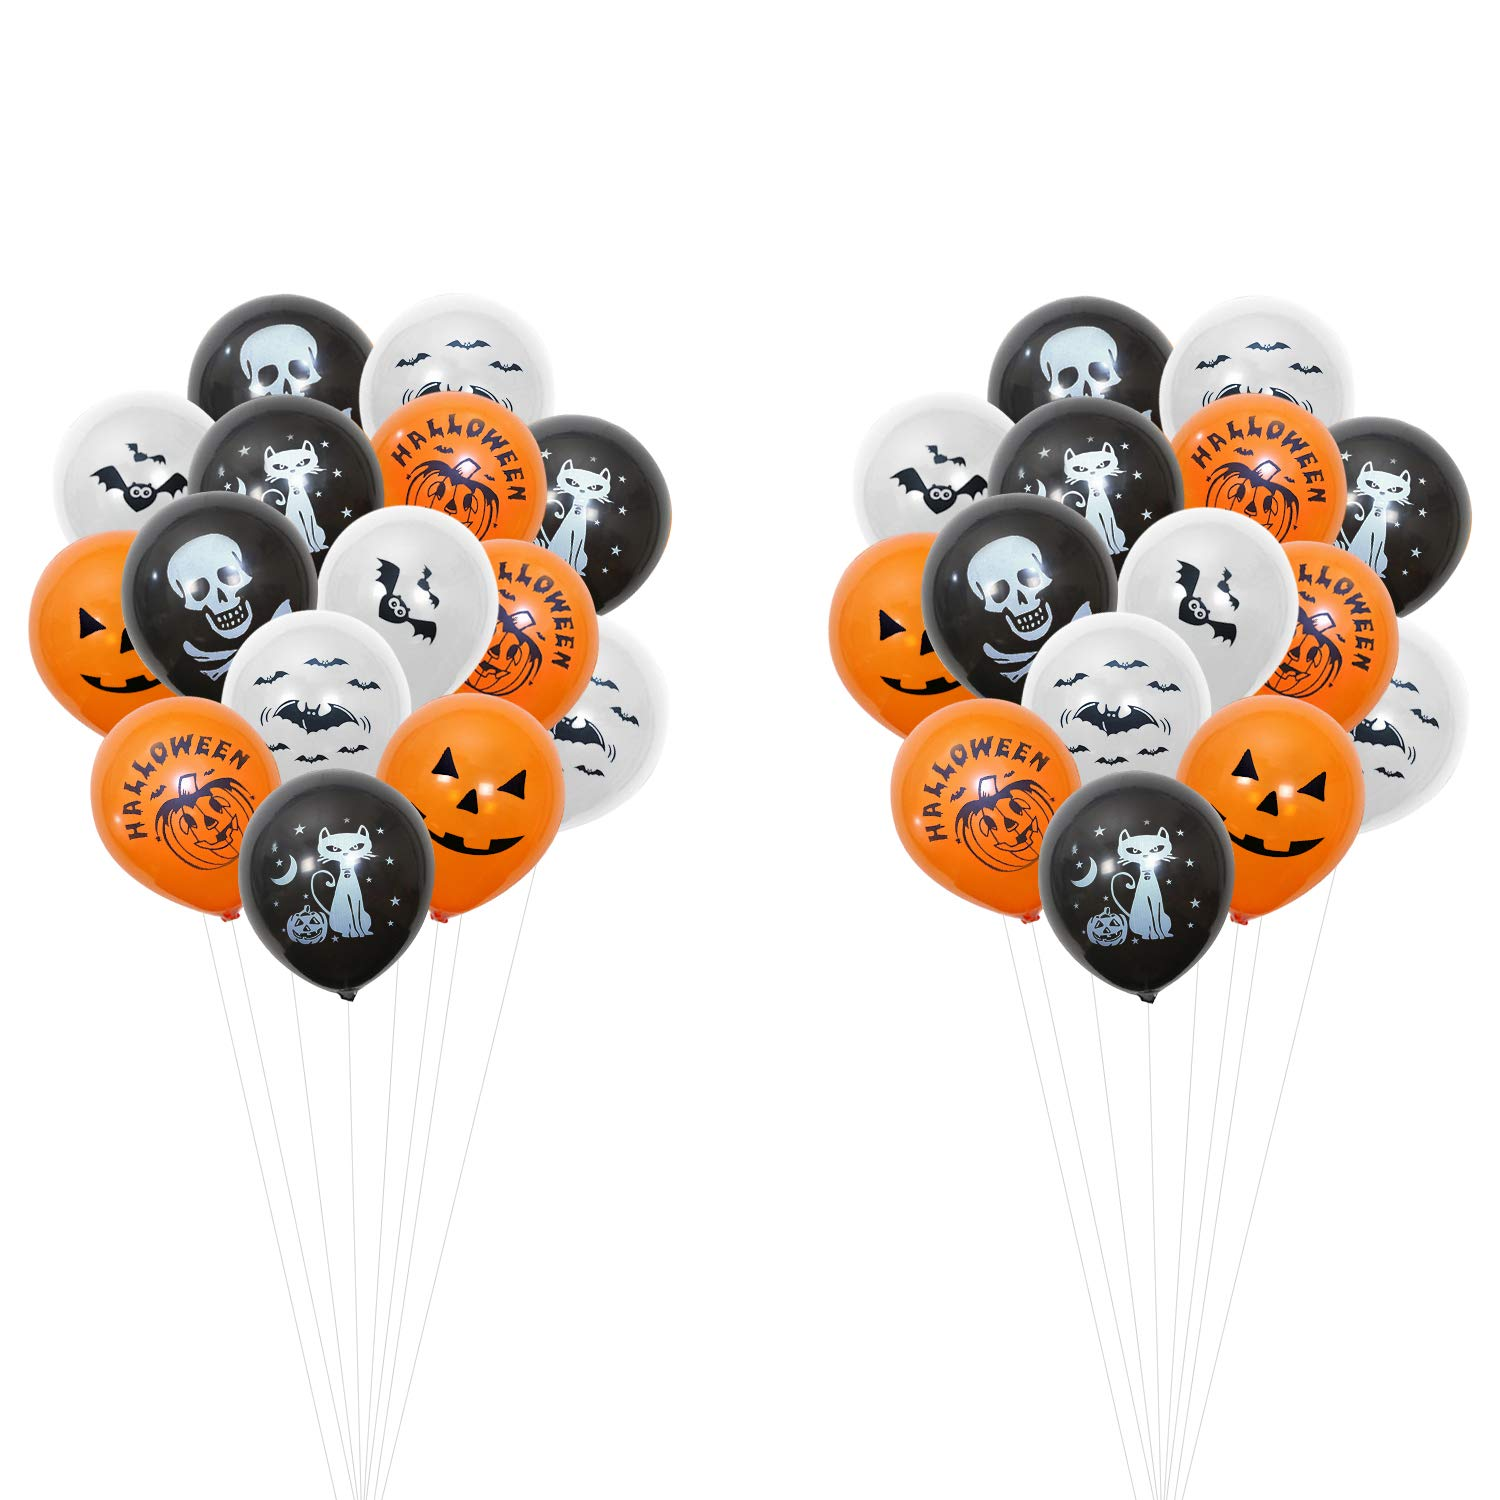 40 Pcs Decorations Happiness maker Halloween Balloons Banner Kit Include Halloween Banner//Latex Balloons//Paper Garlands//Star, Pumpkin/&Bat Inflatable Balloons Happy Halloween Party Decoration